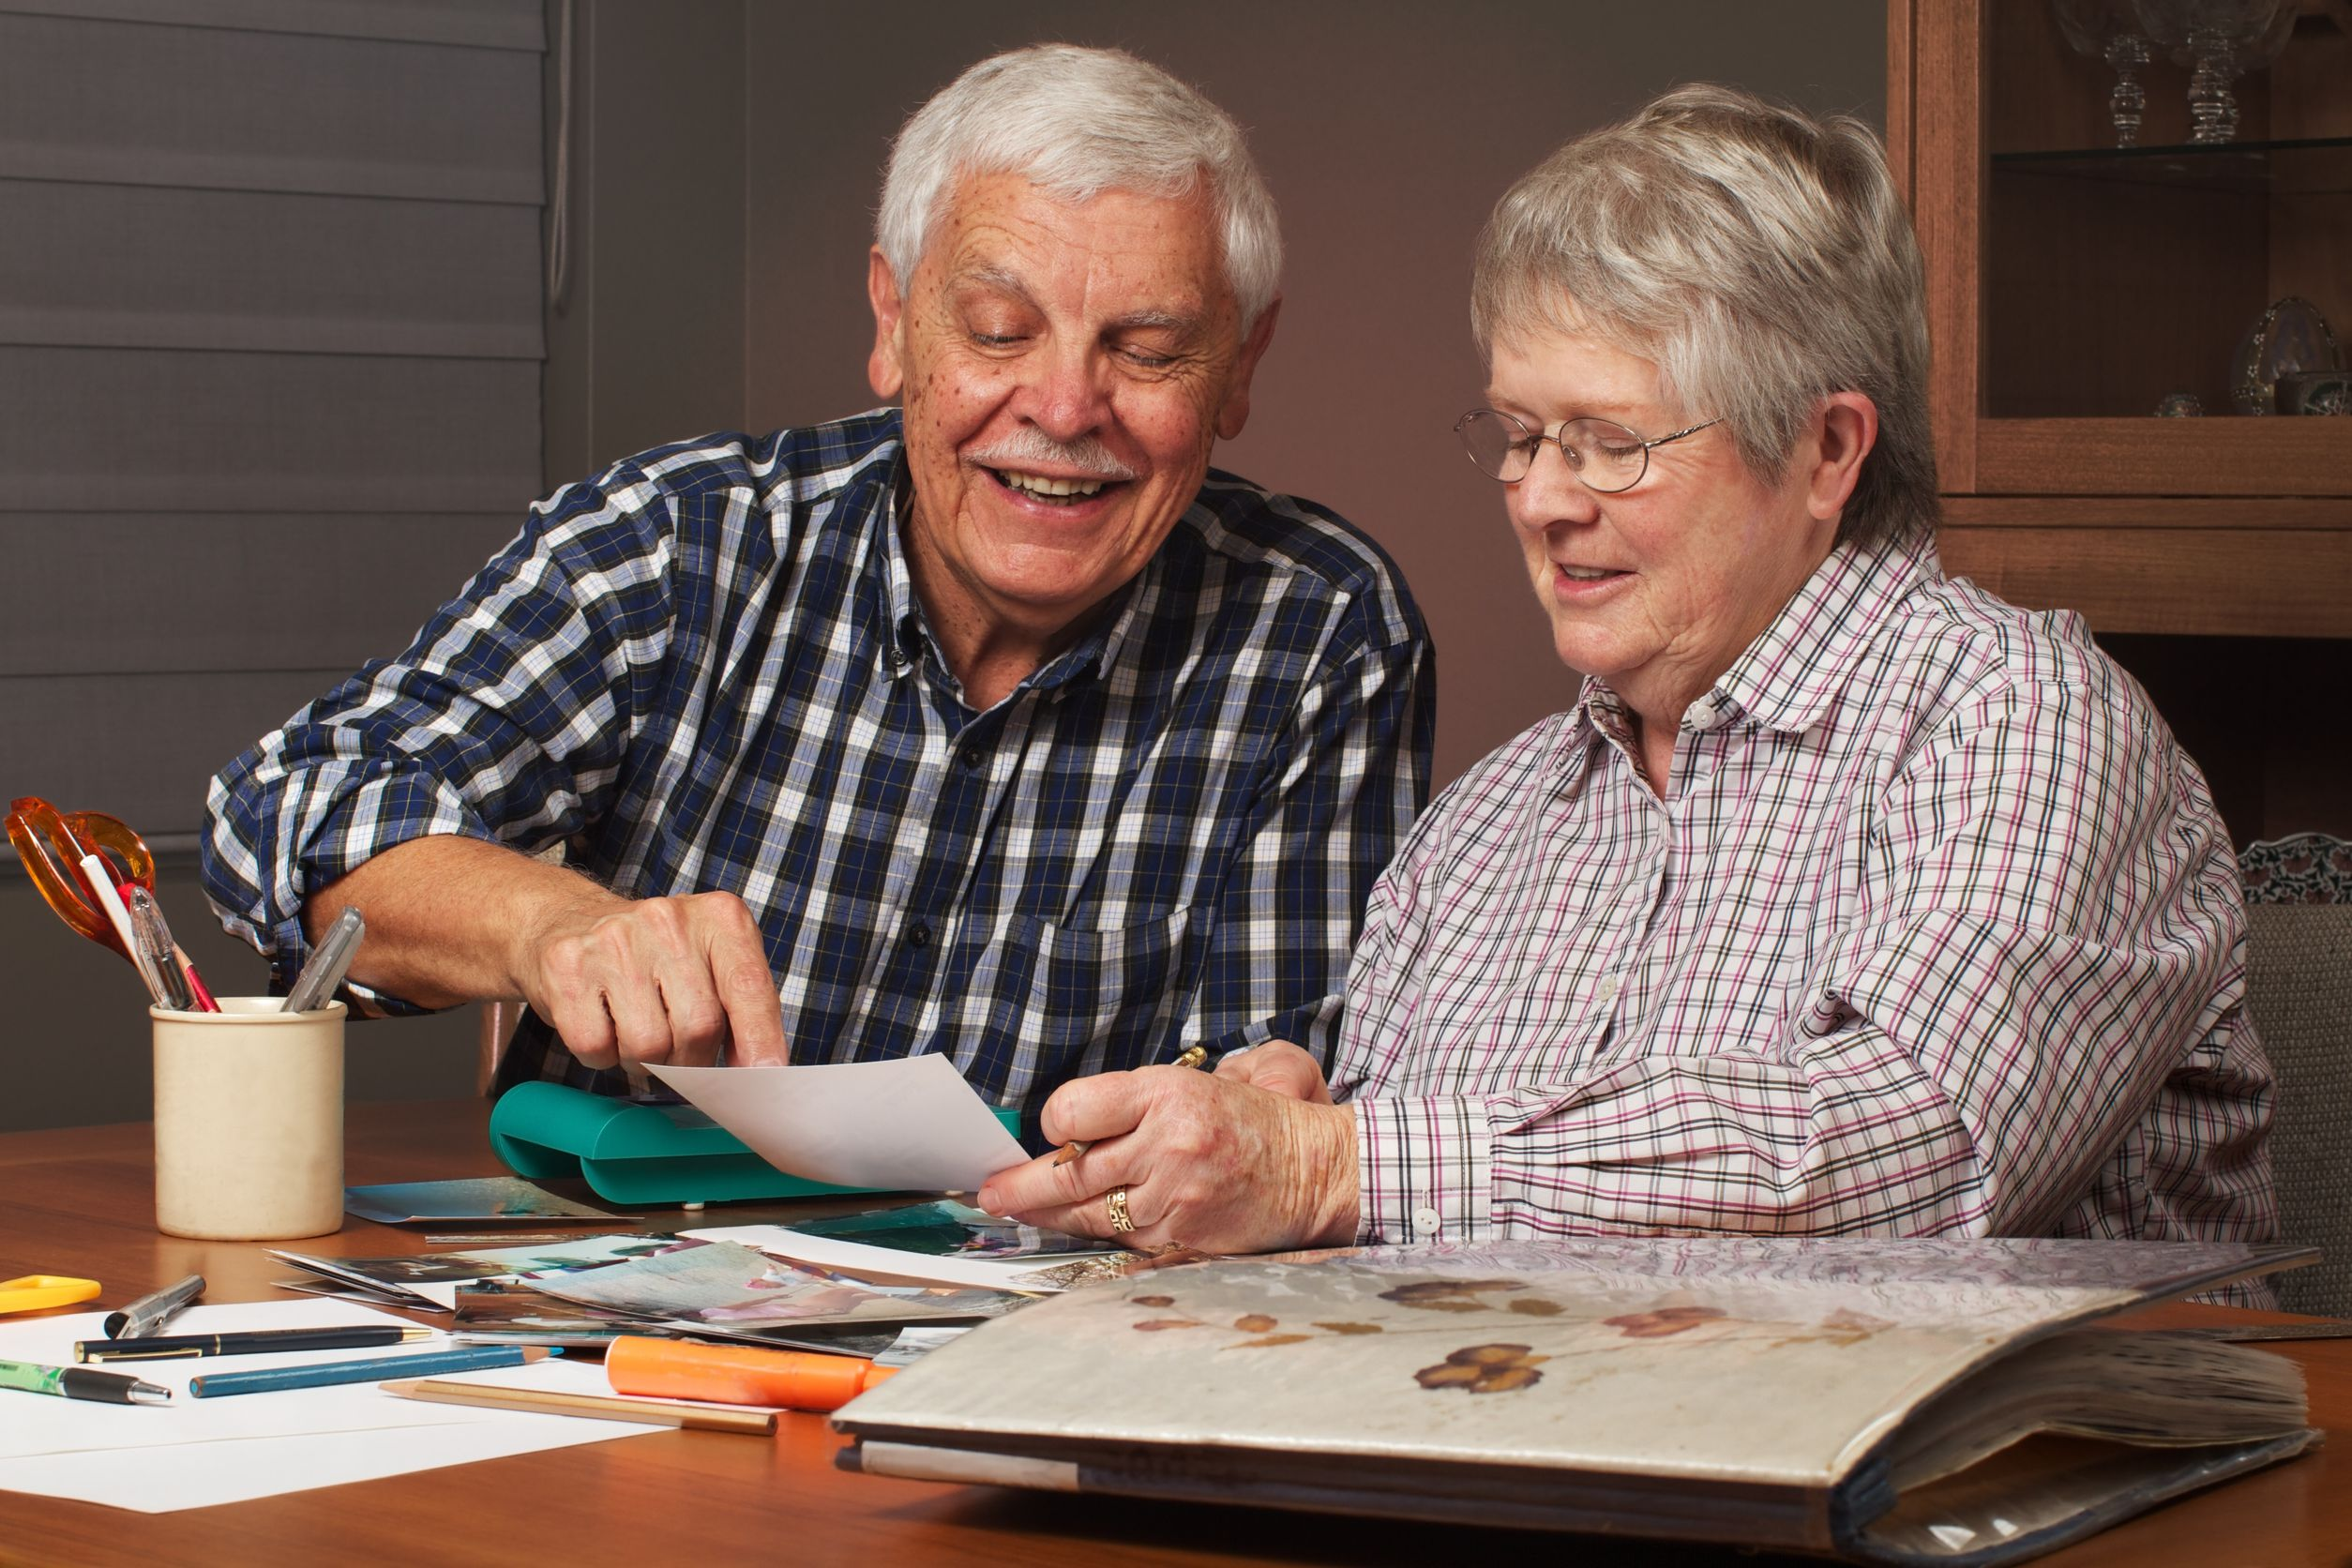 Great Hobbies for Seniors